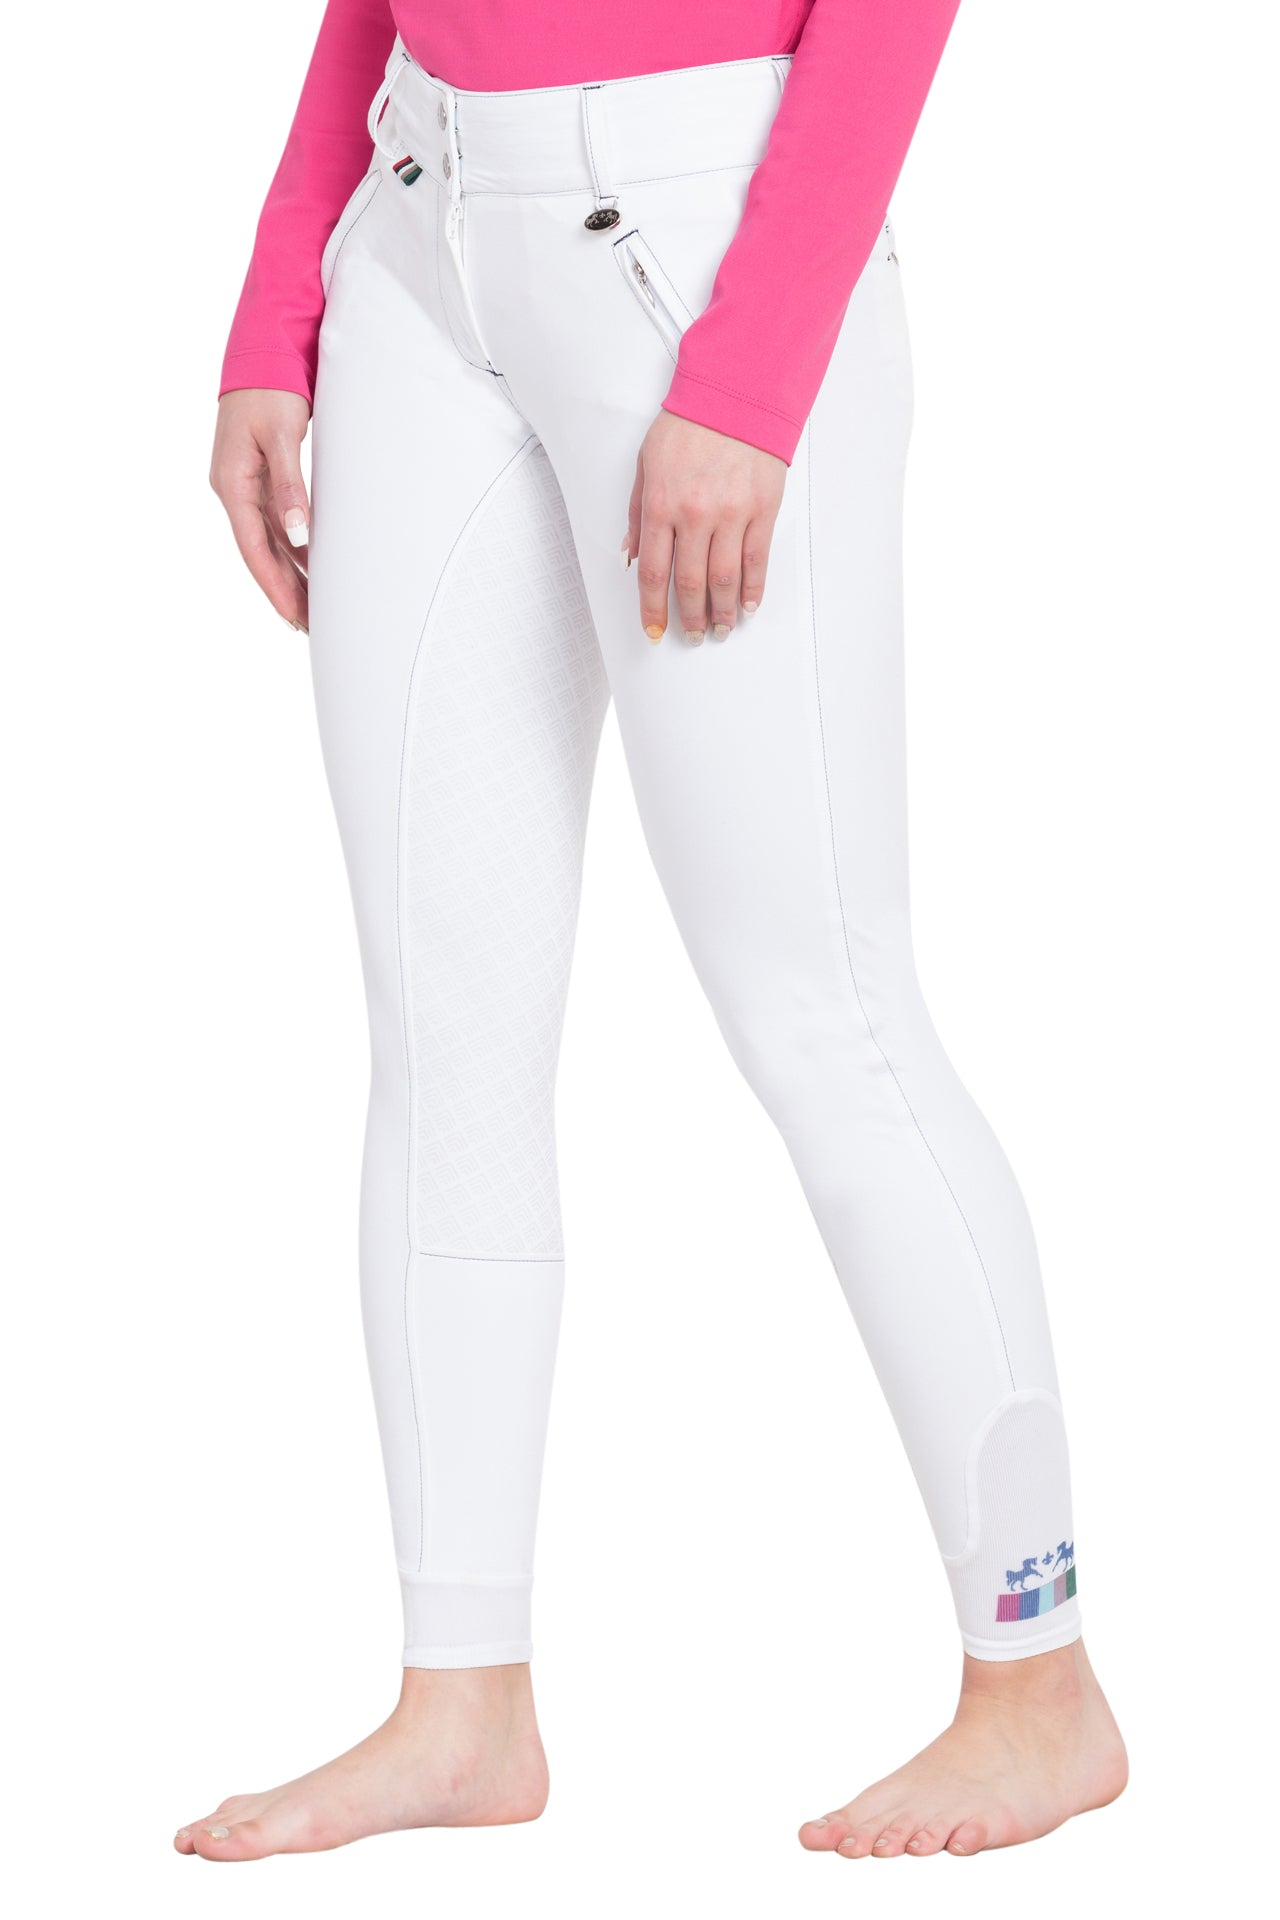 Equine Couture Ladies Beatta Silicone Full Seat Breeches - Equine Couture - Breeches.com